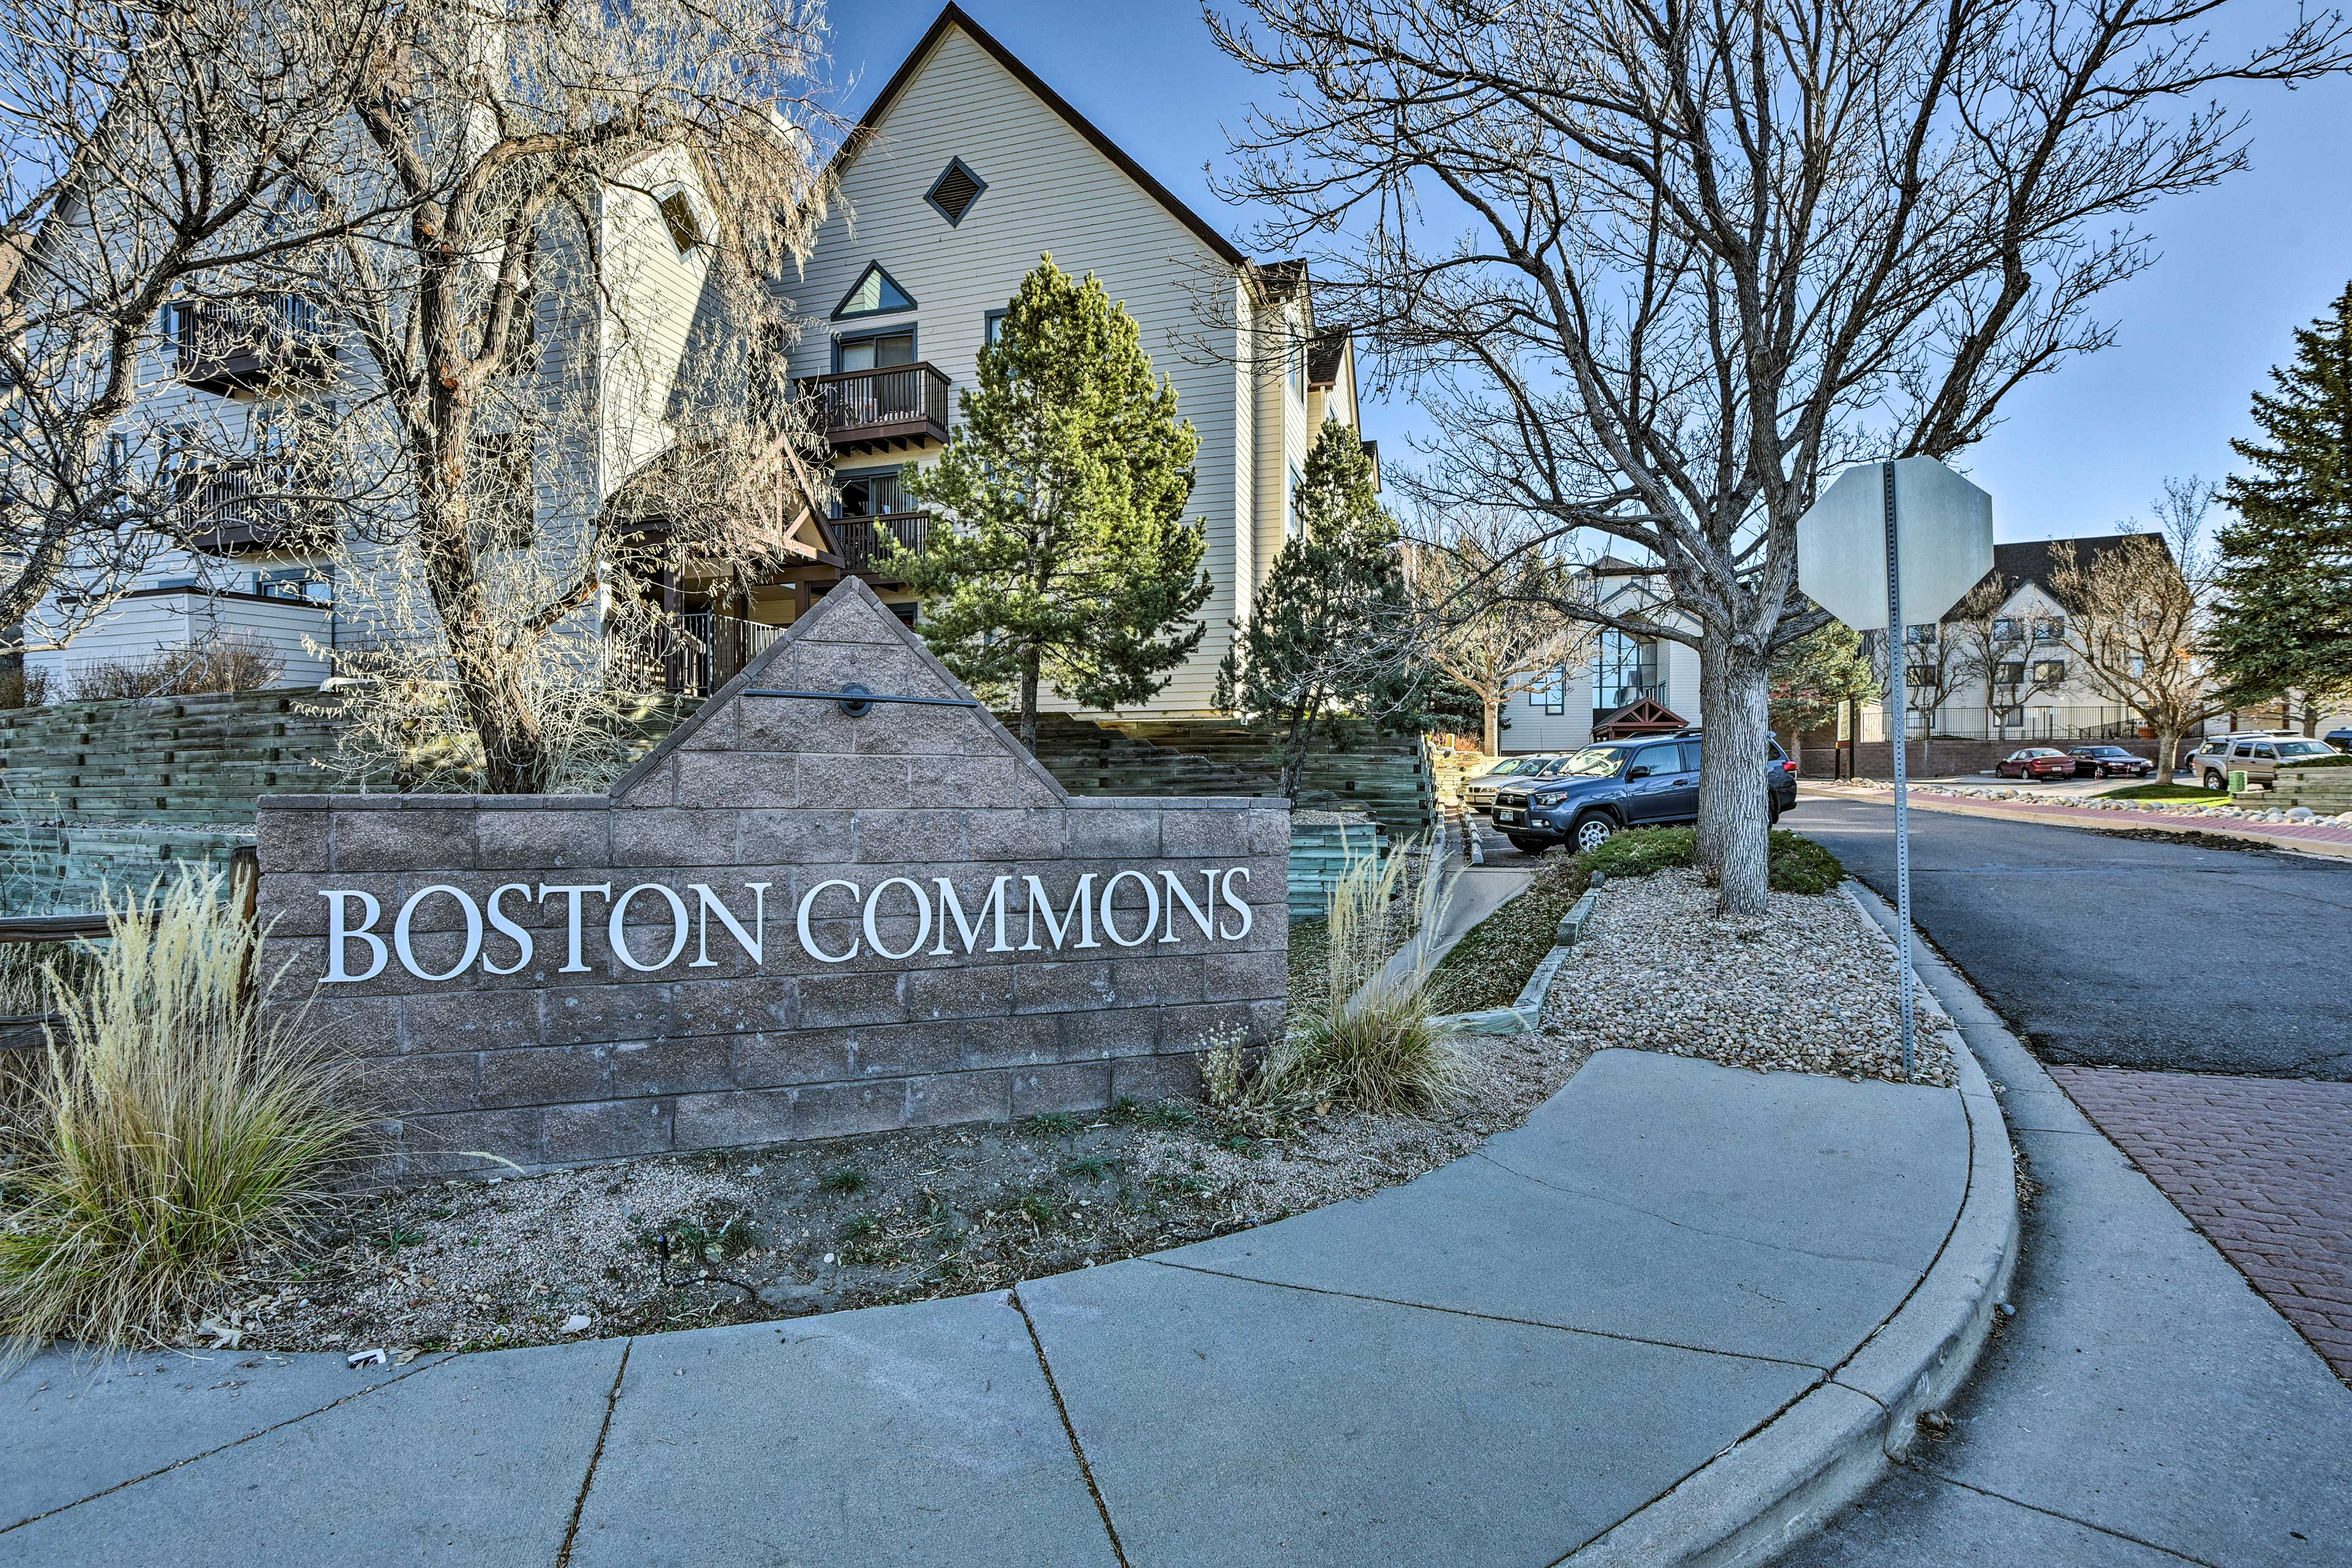 With the light-rail and DTC just minutes away, Boston Commons is one of the best